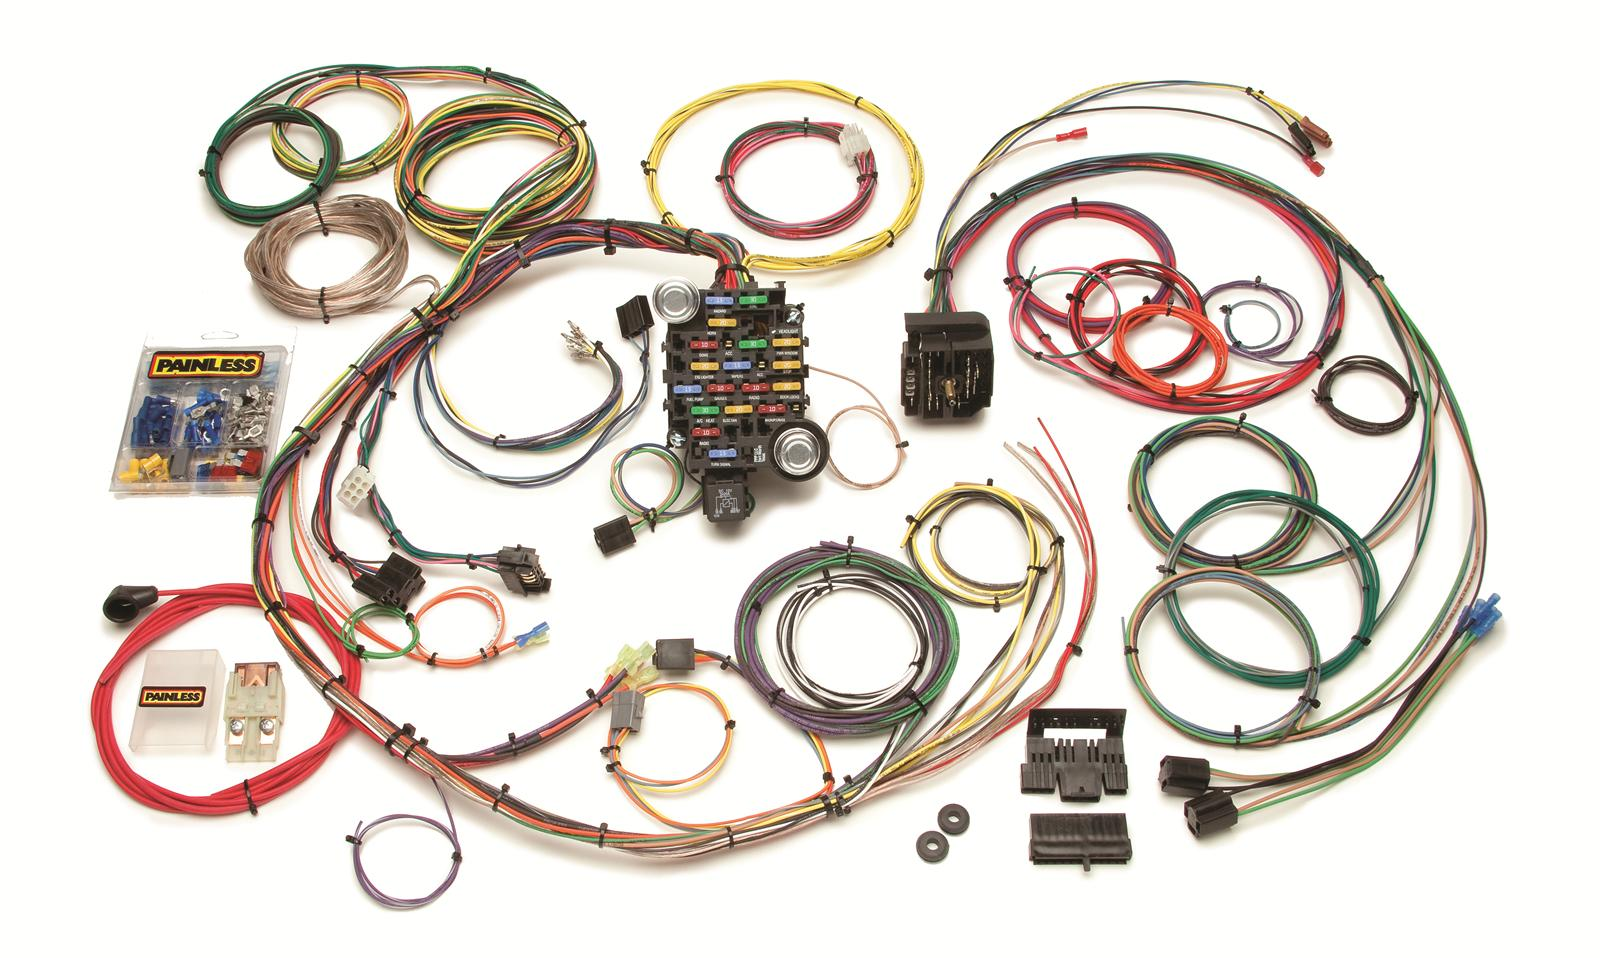 Painless Performance 24-Circuit 1967-68 Camaro and Firebird Harnesses 20101  - Free Shipping on Orders Over $49 at Summit Racing